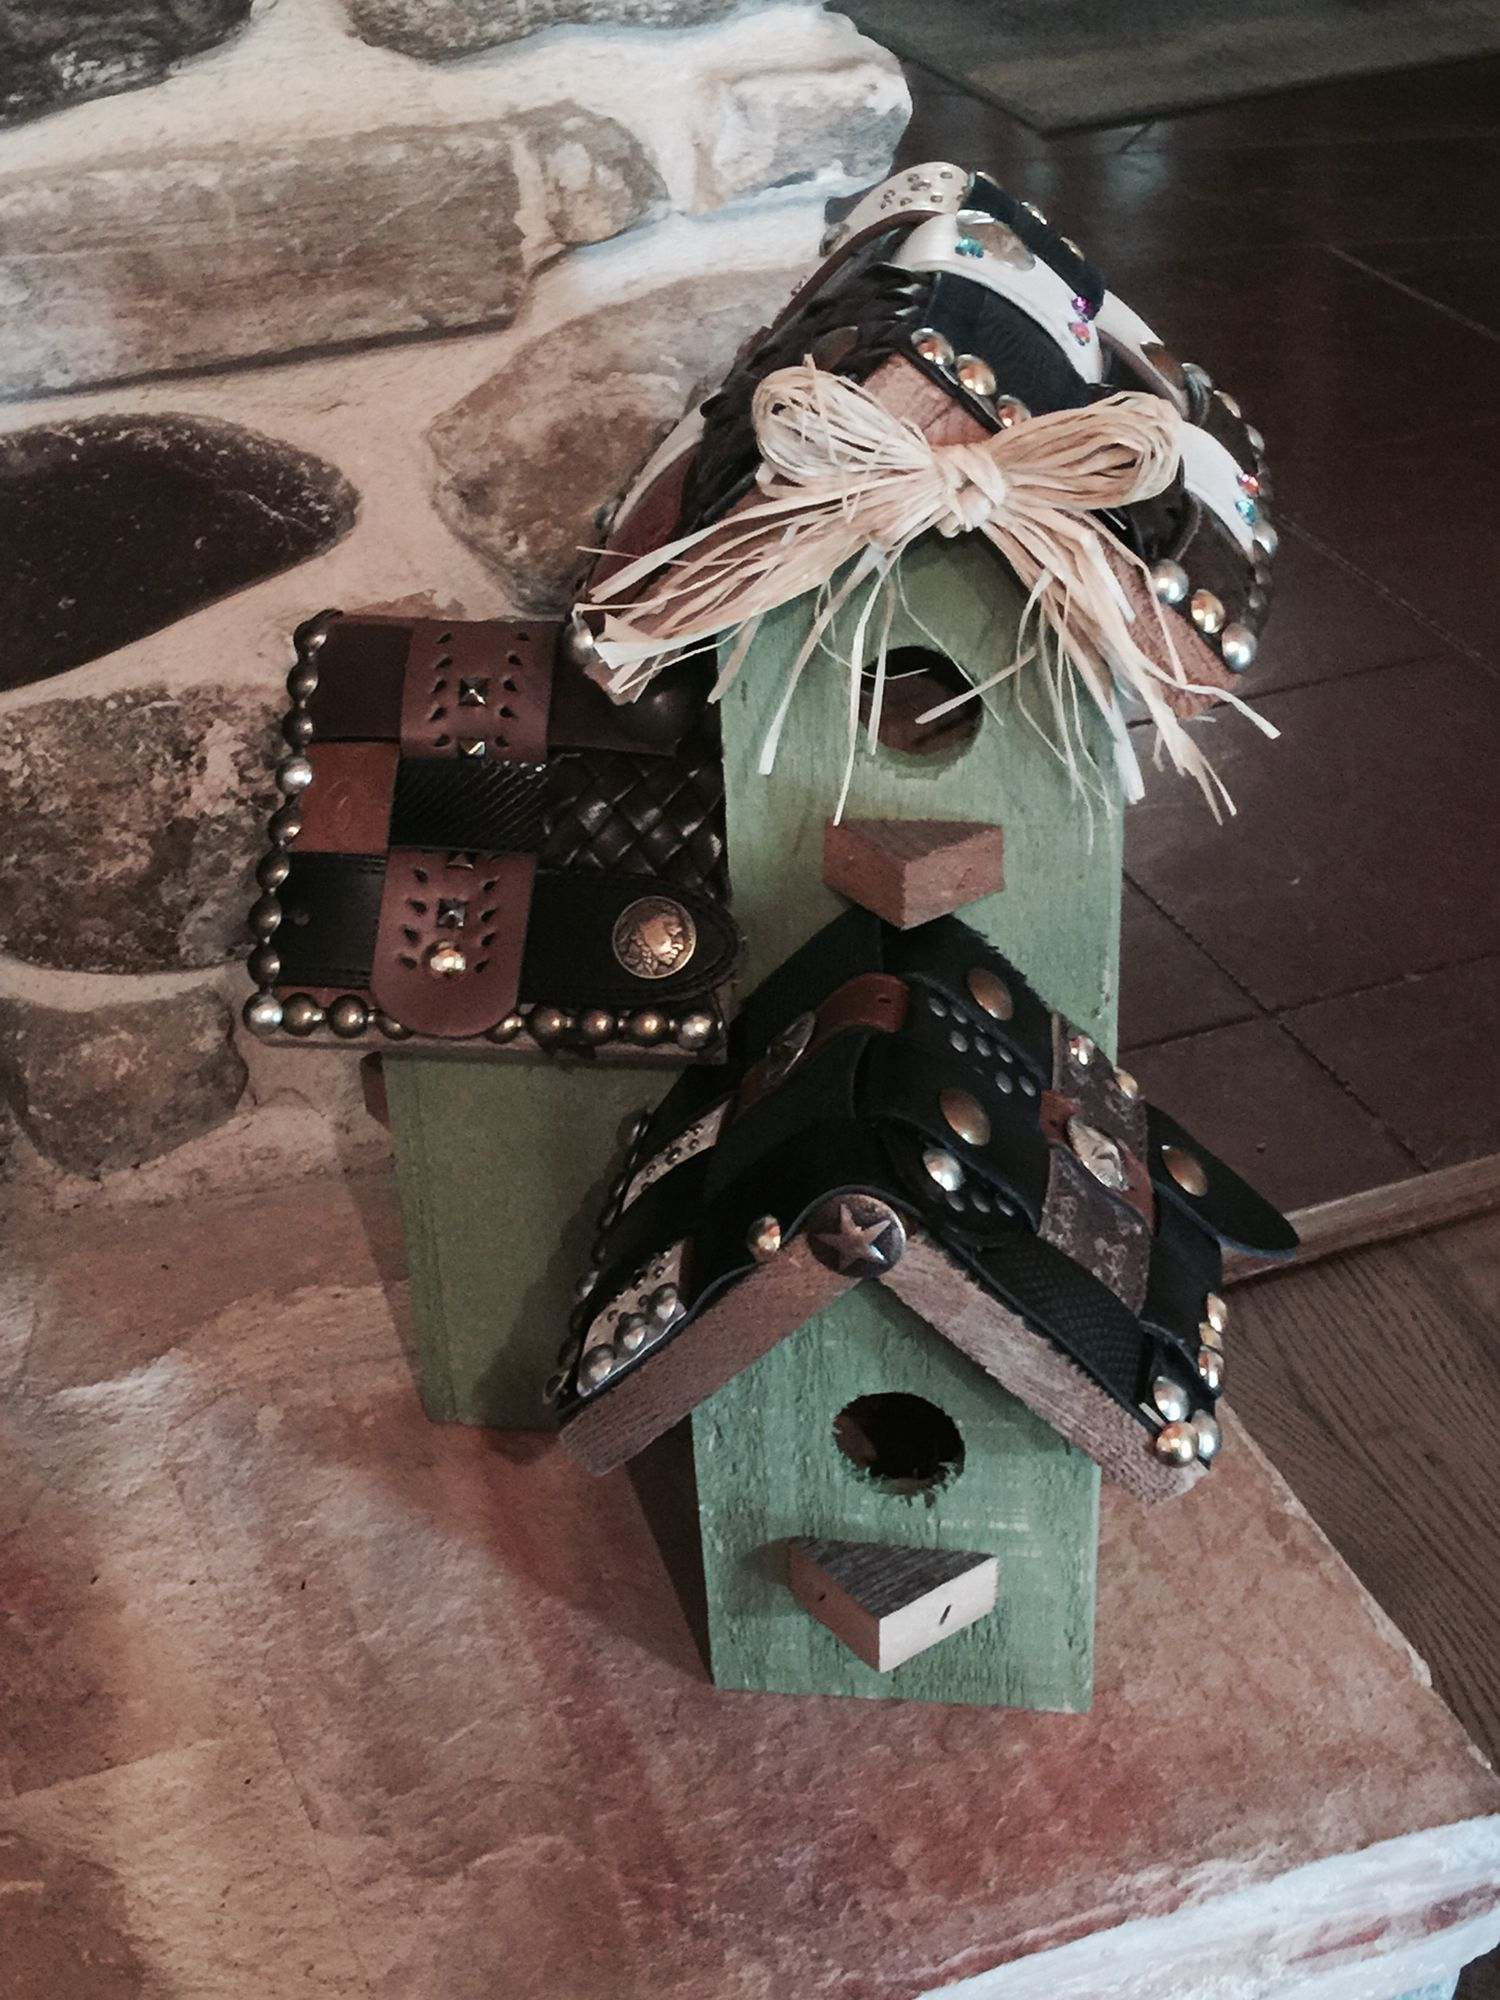 California physical therapy - Birdhouse Donated To Physical Therapy In California